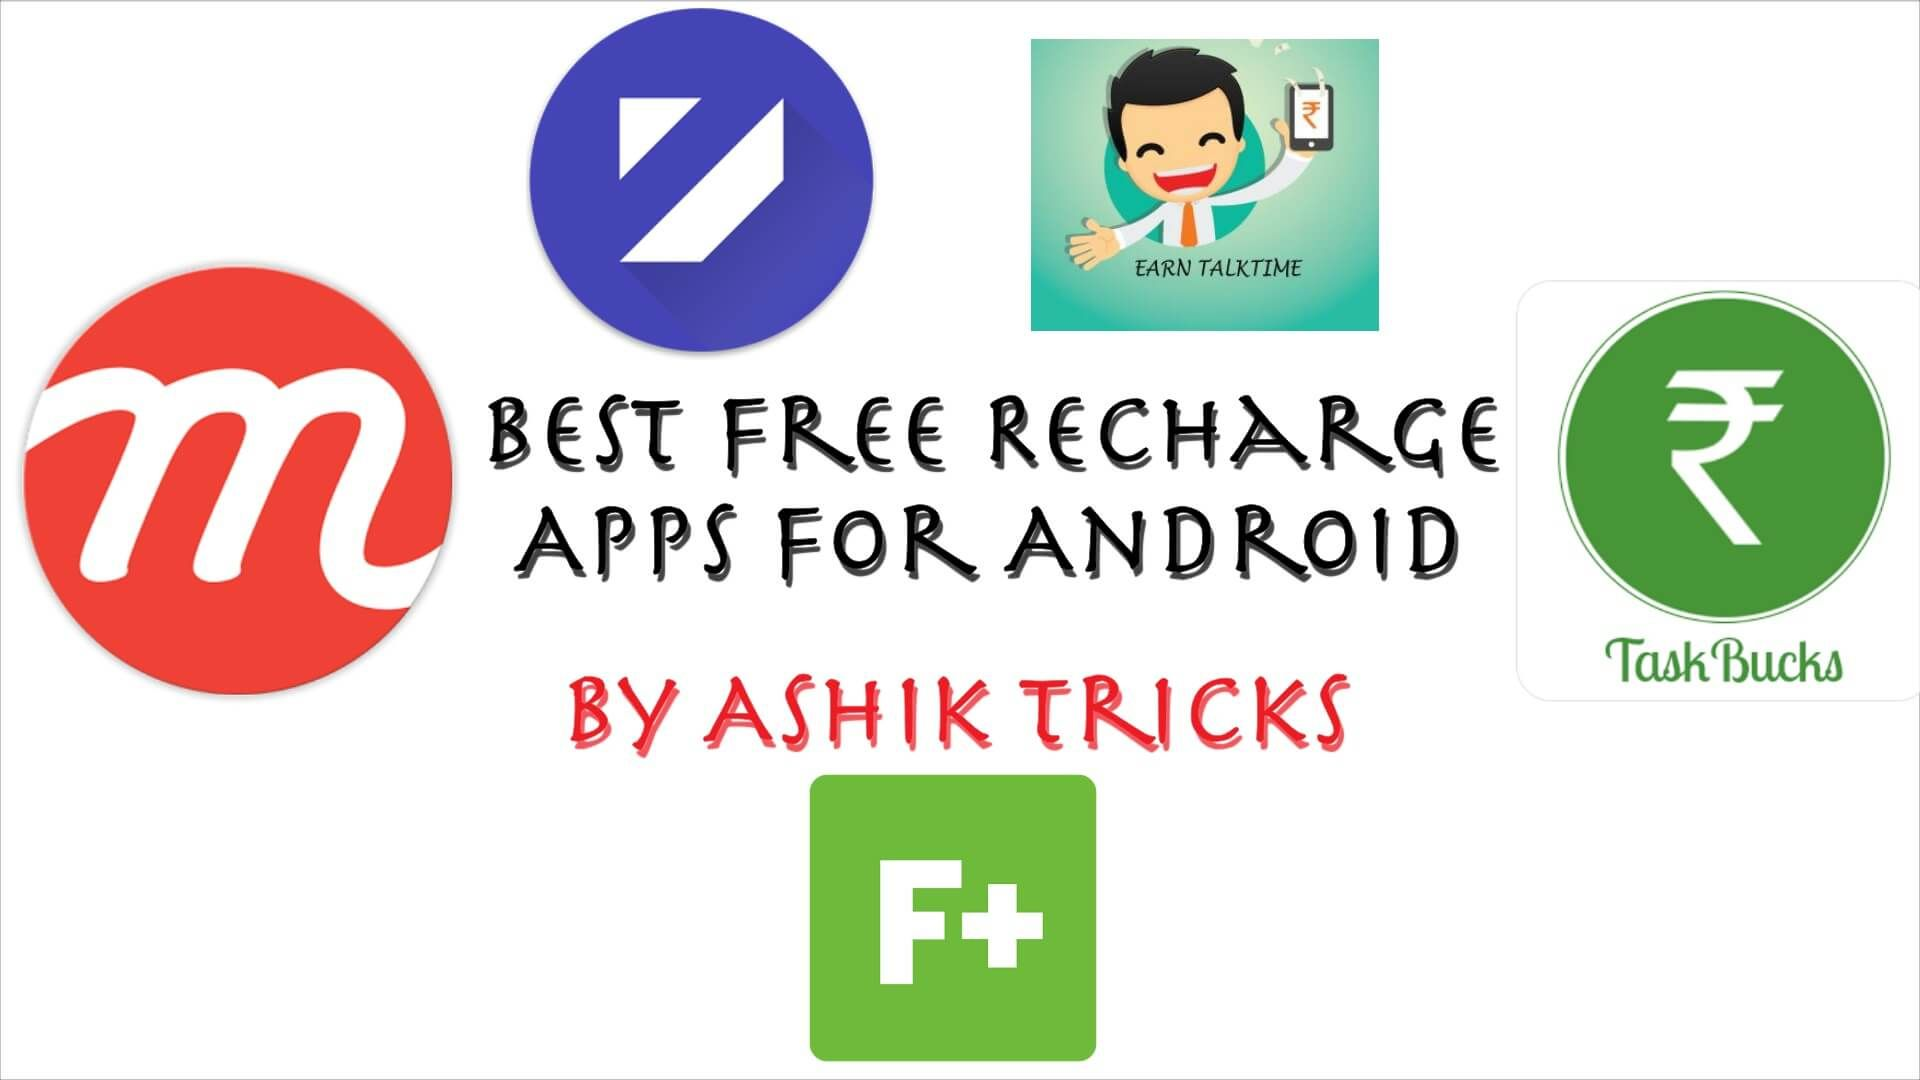 10 best free recharge apps for android 2017 new app